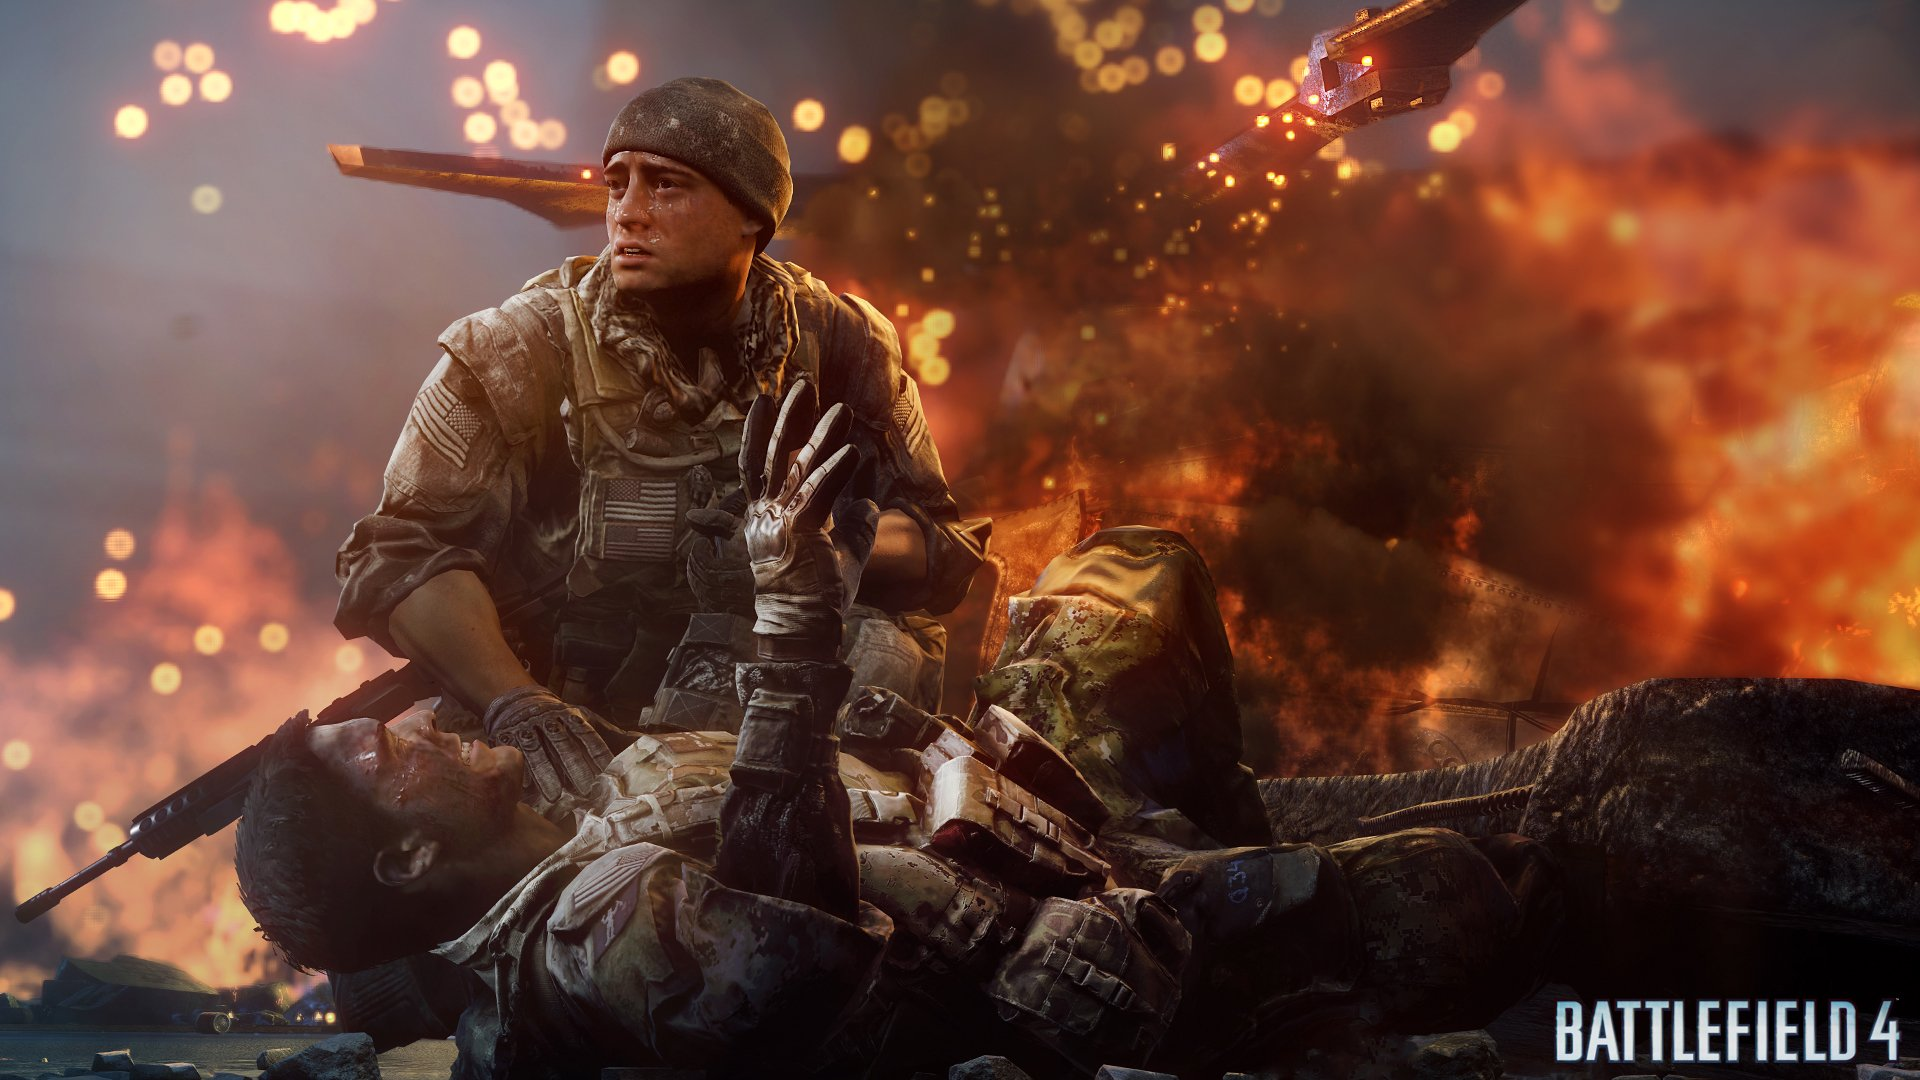 Battlefield 4 live demo, gameplay trailer, and interview – best graphics ever